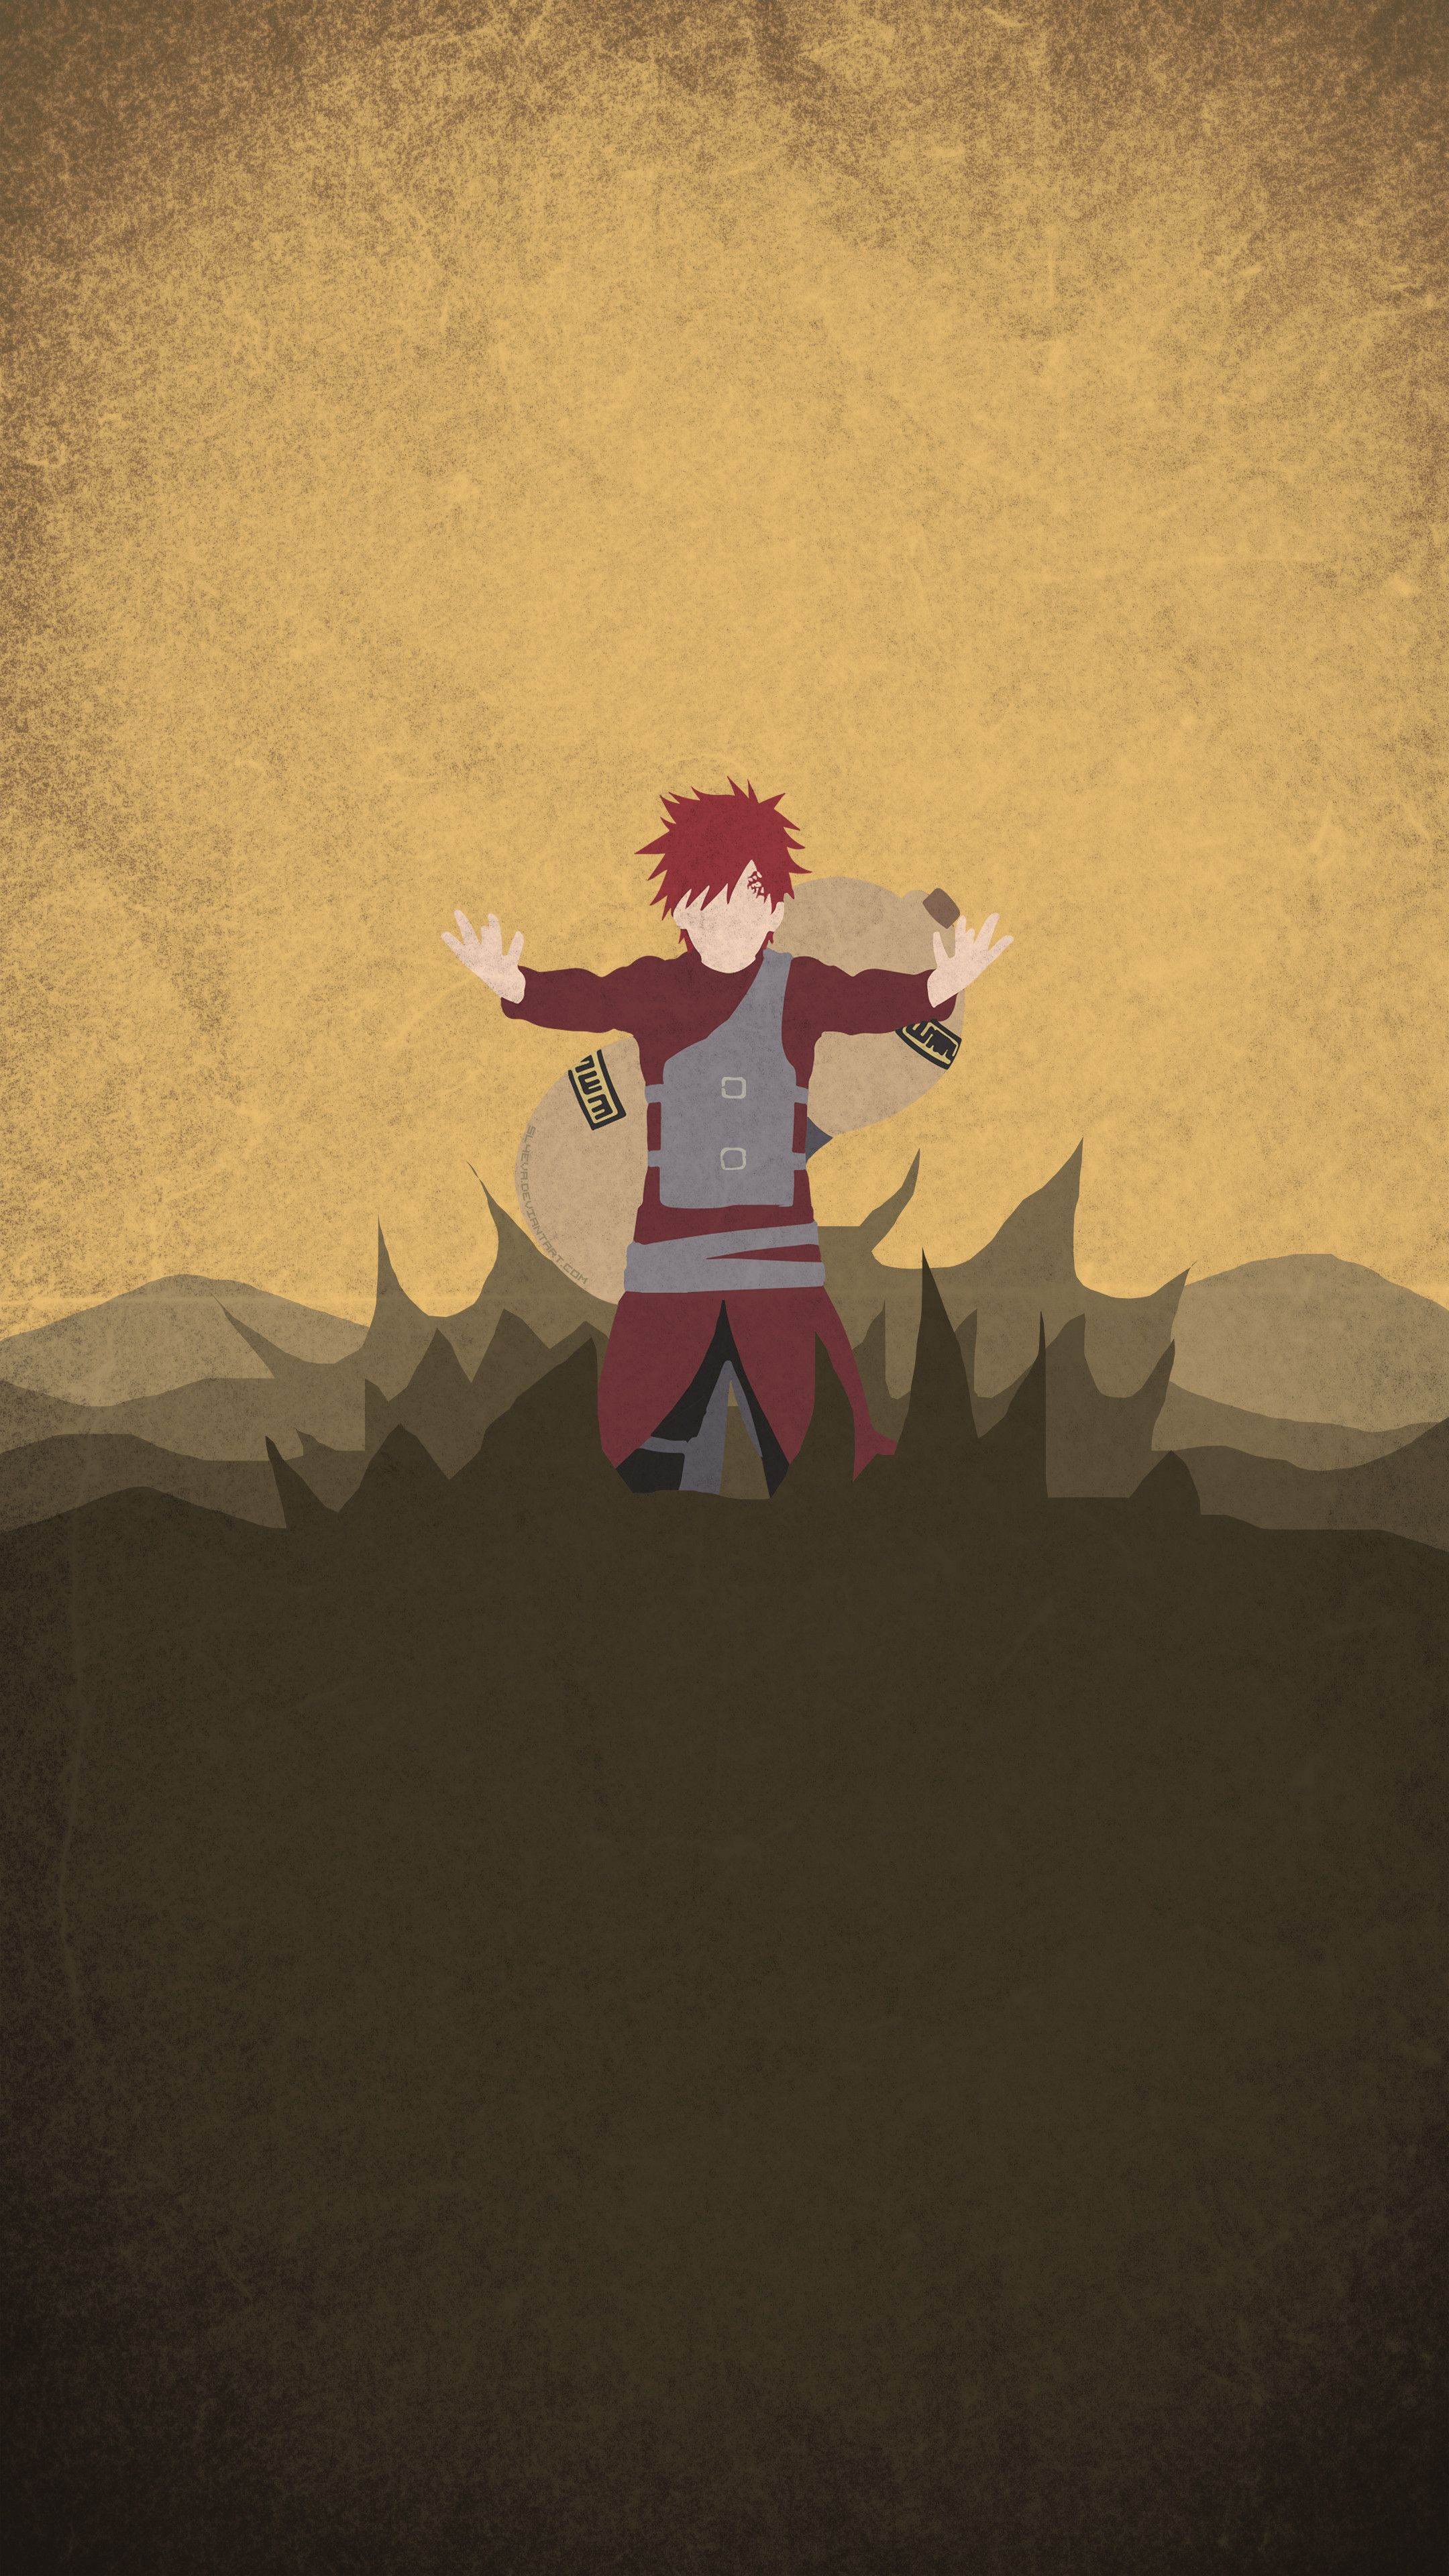 4k Naruto Minimal Mobile Wallpaper Series Ii Imgur Wallpaper Naruto Shippuden Naruto Wallpaper Naruto Shippuden Anime